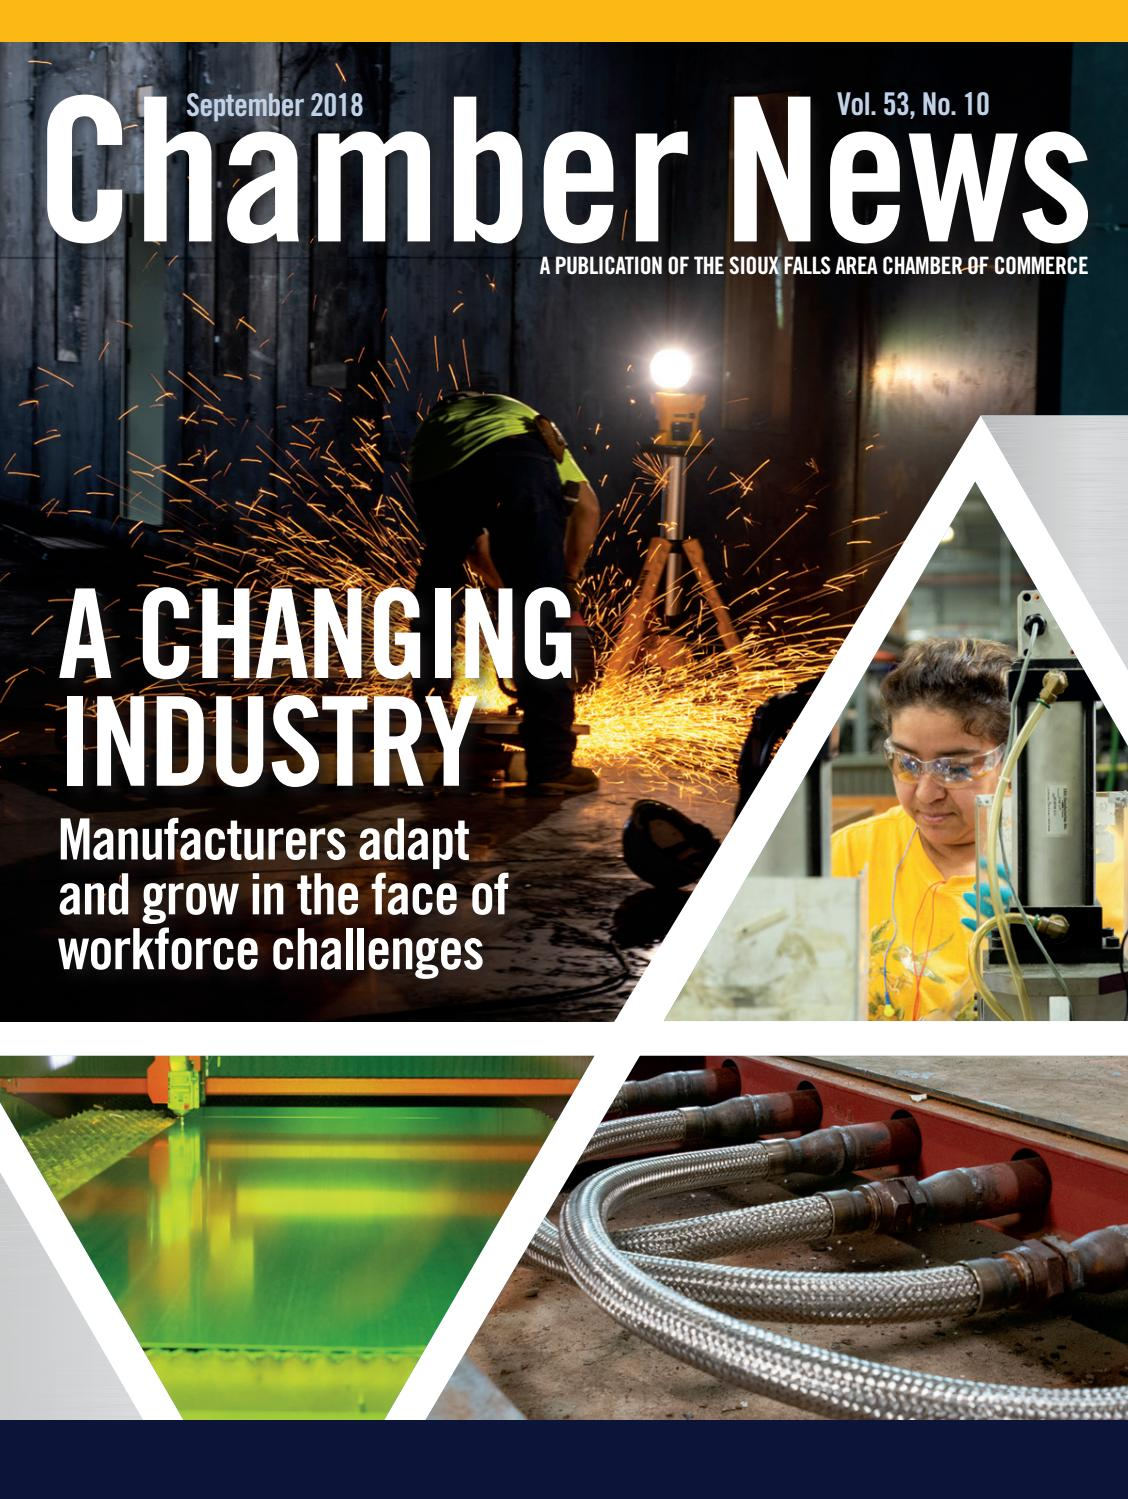 September 2018 Chamber News by Sioux Falls Area Chamber of Commerce